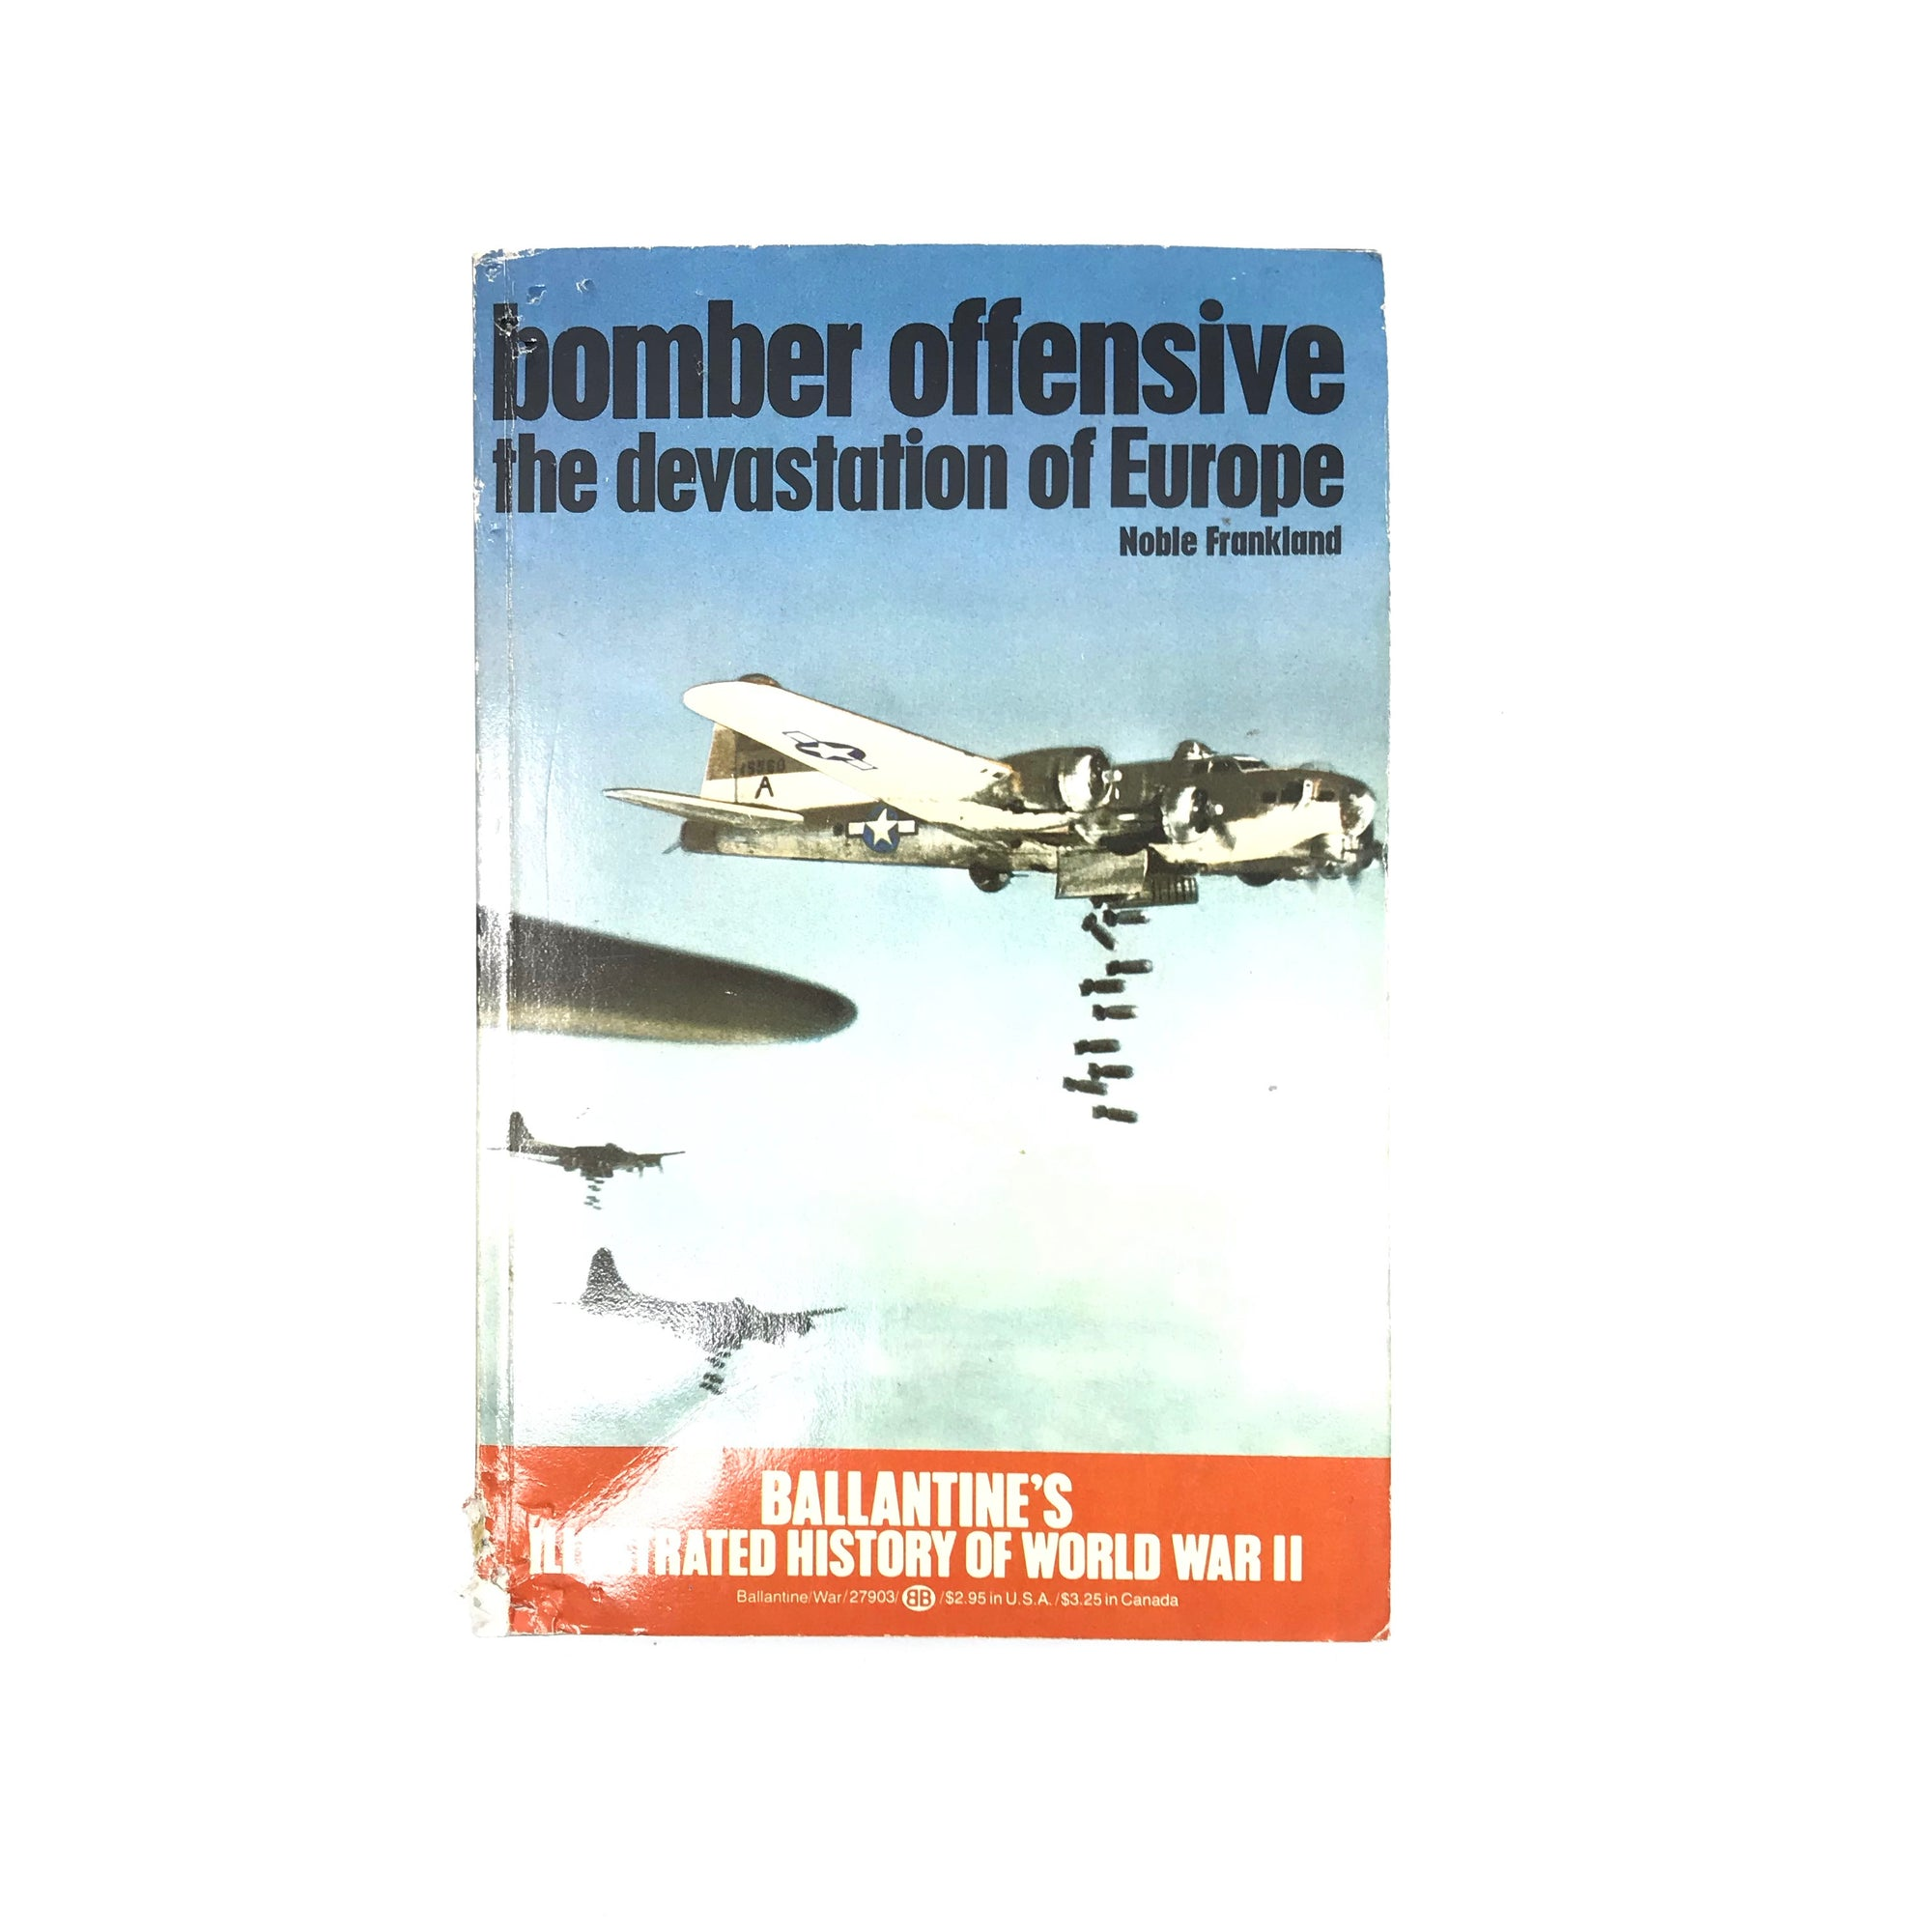 Ballantine's Illustrated History of World War II: Bomber Offensive the Devestation of Europe (Noble Frankland)